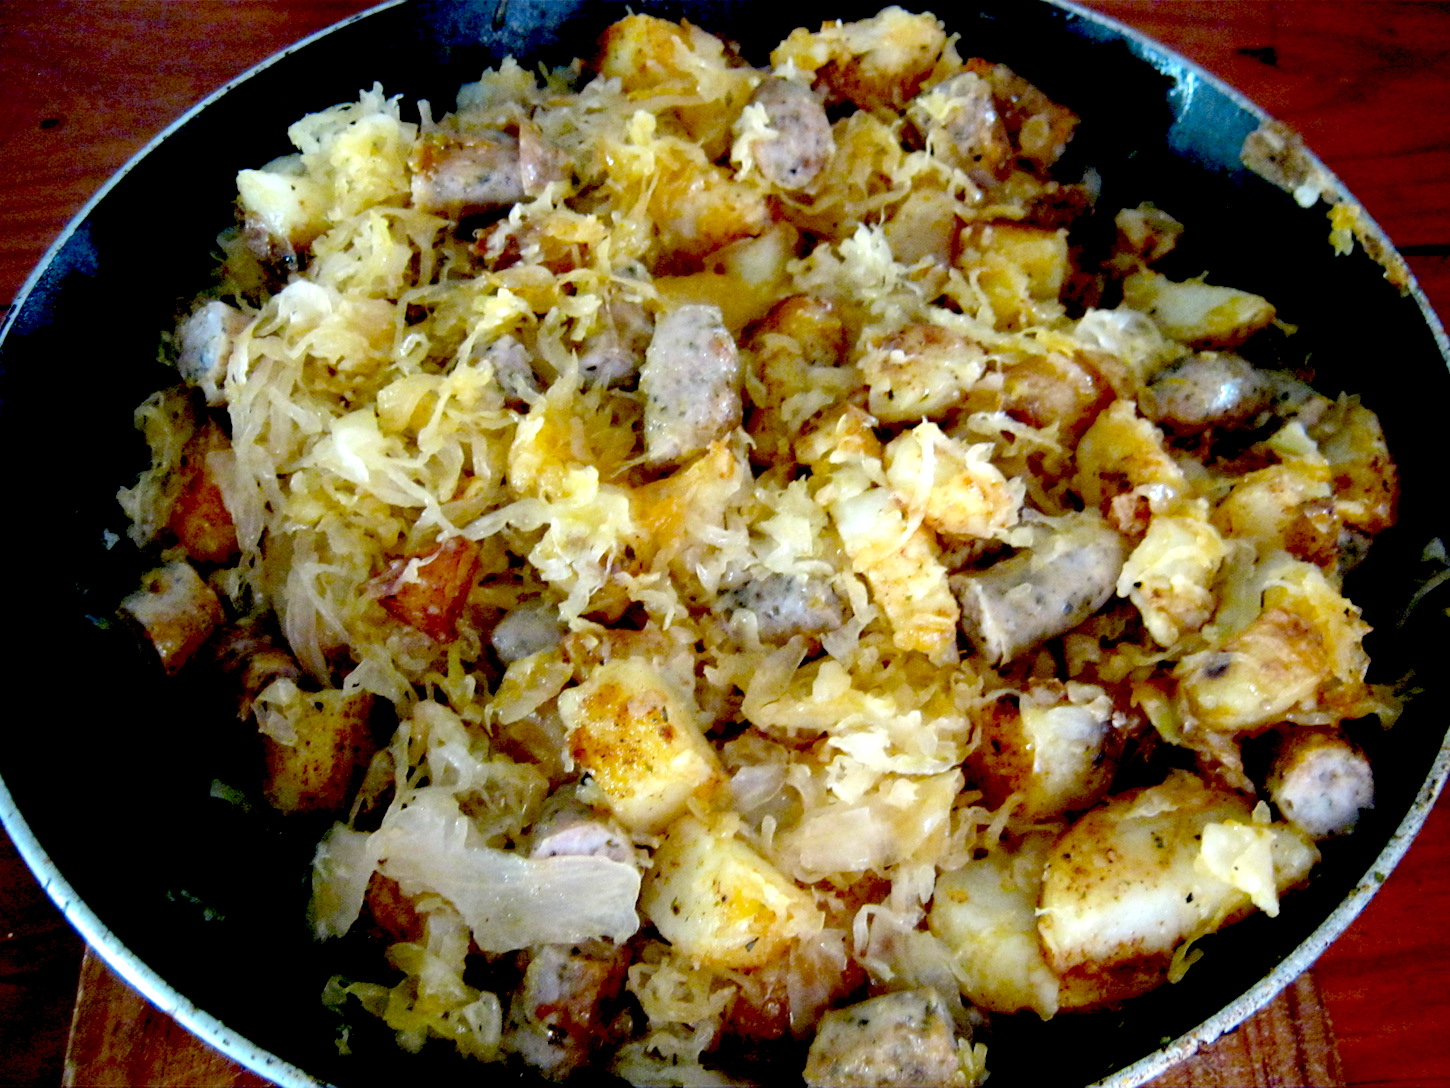 Pan fried Potatoes with Bratwurst and Sauerkraut